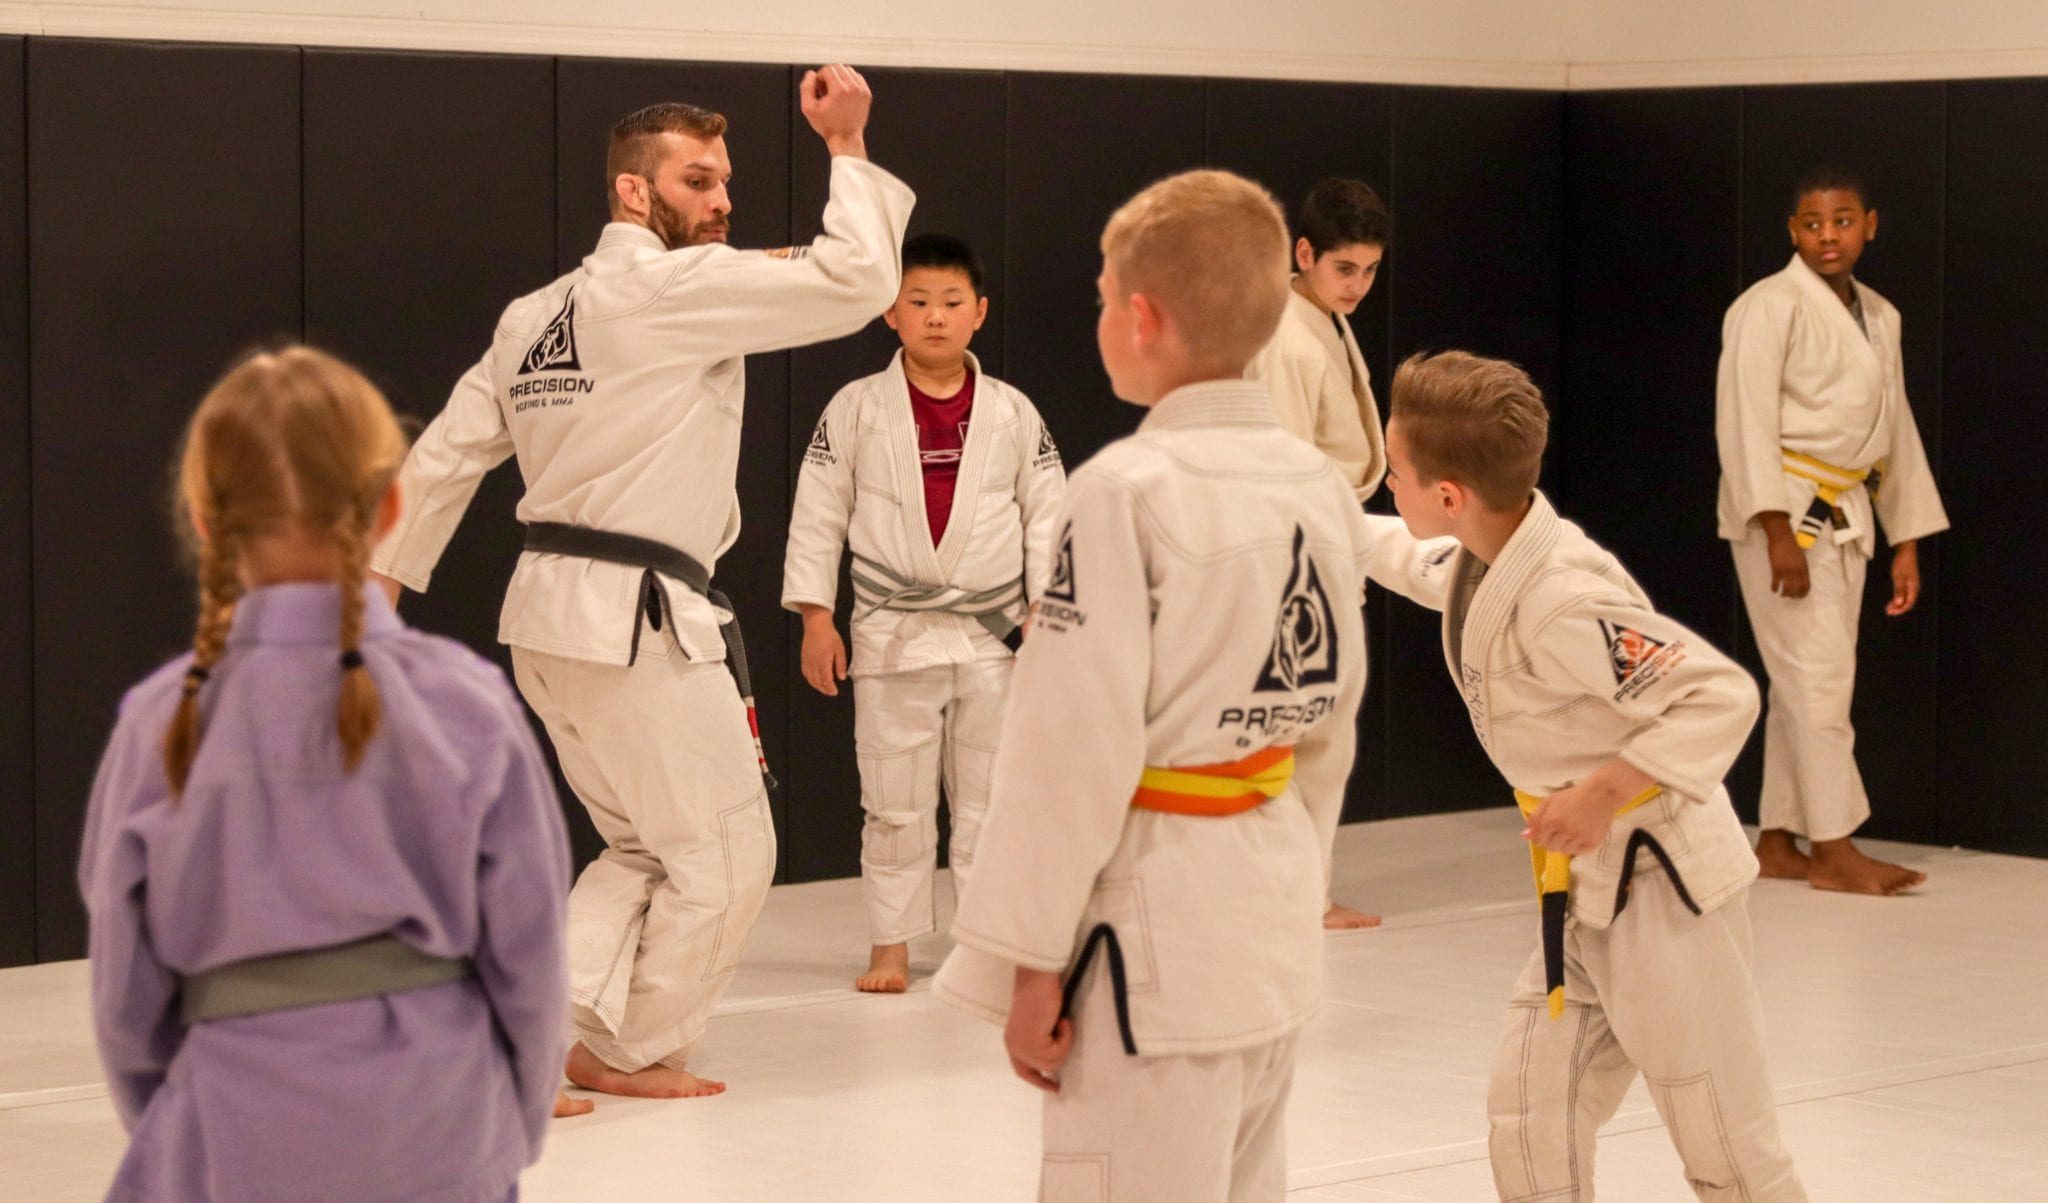 brian teaching a bjj move during kids class